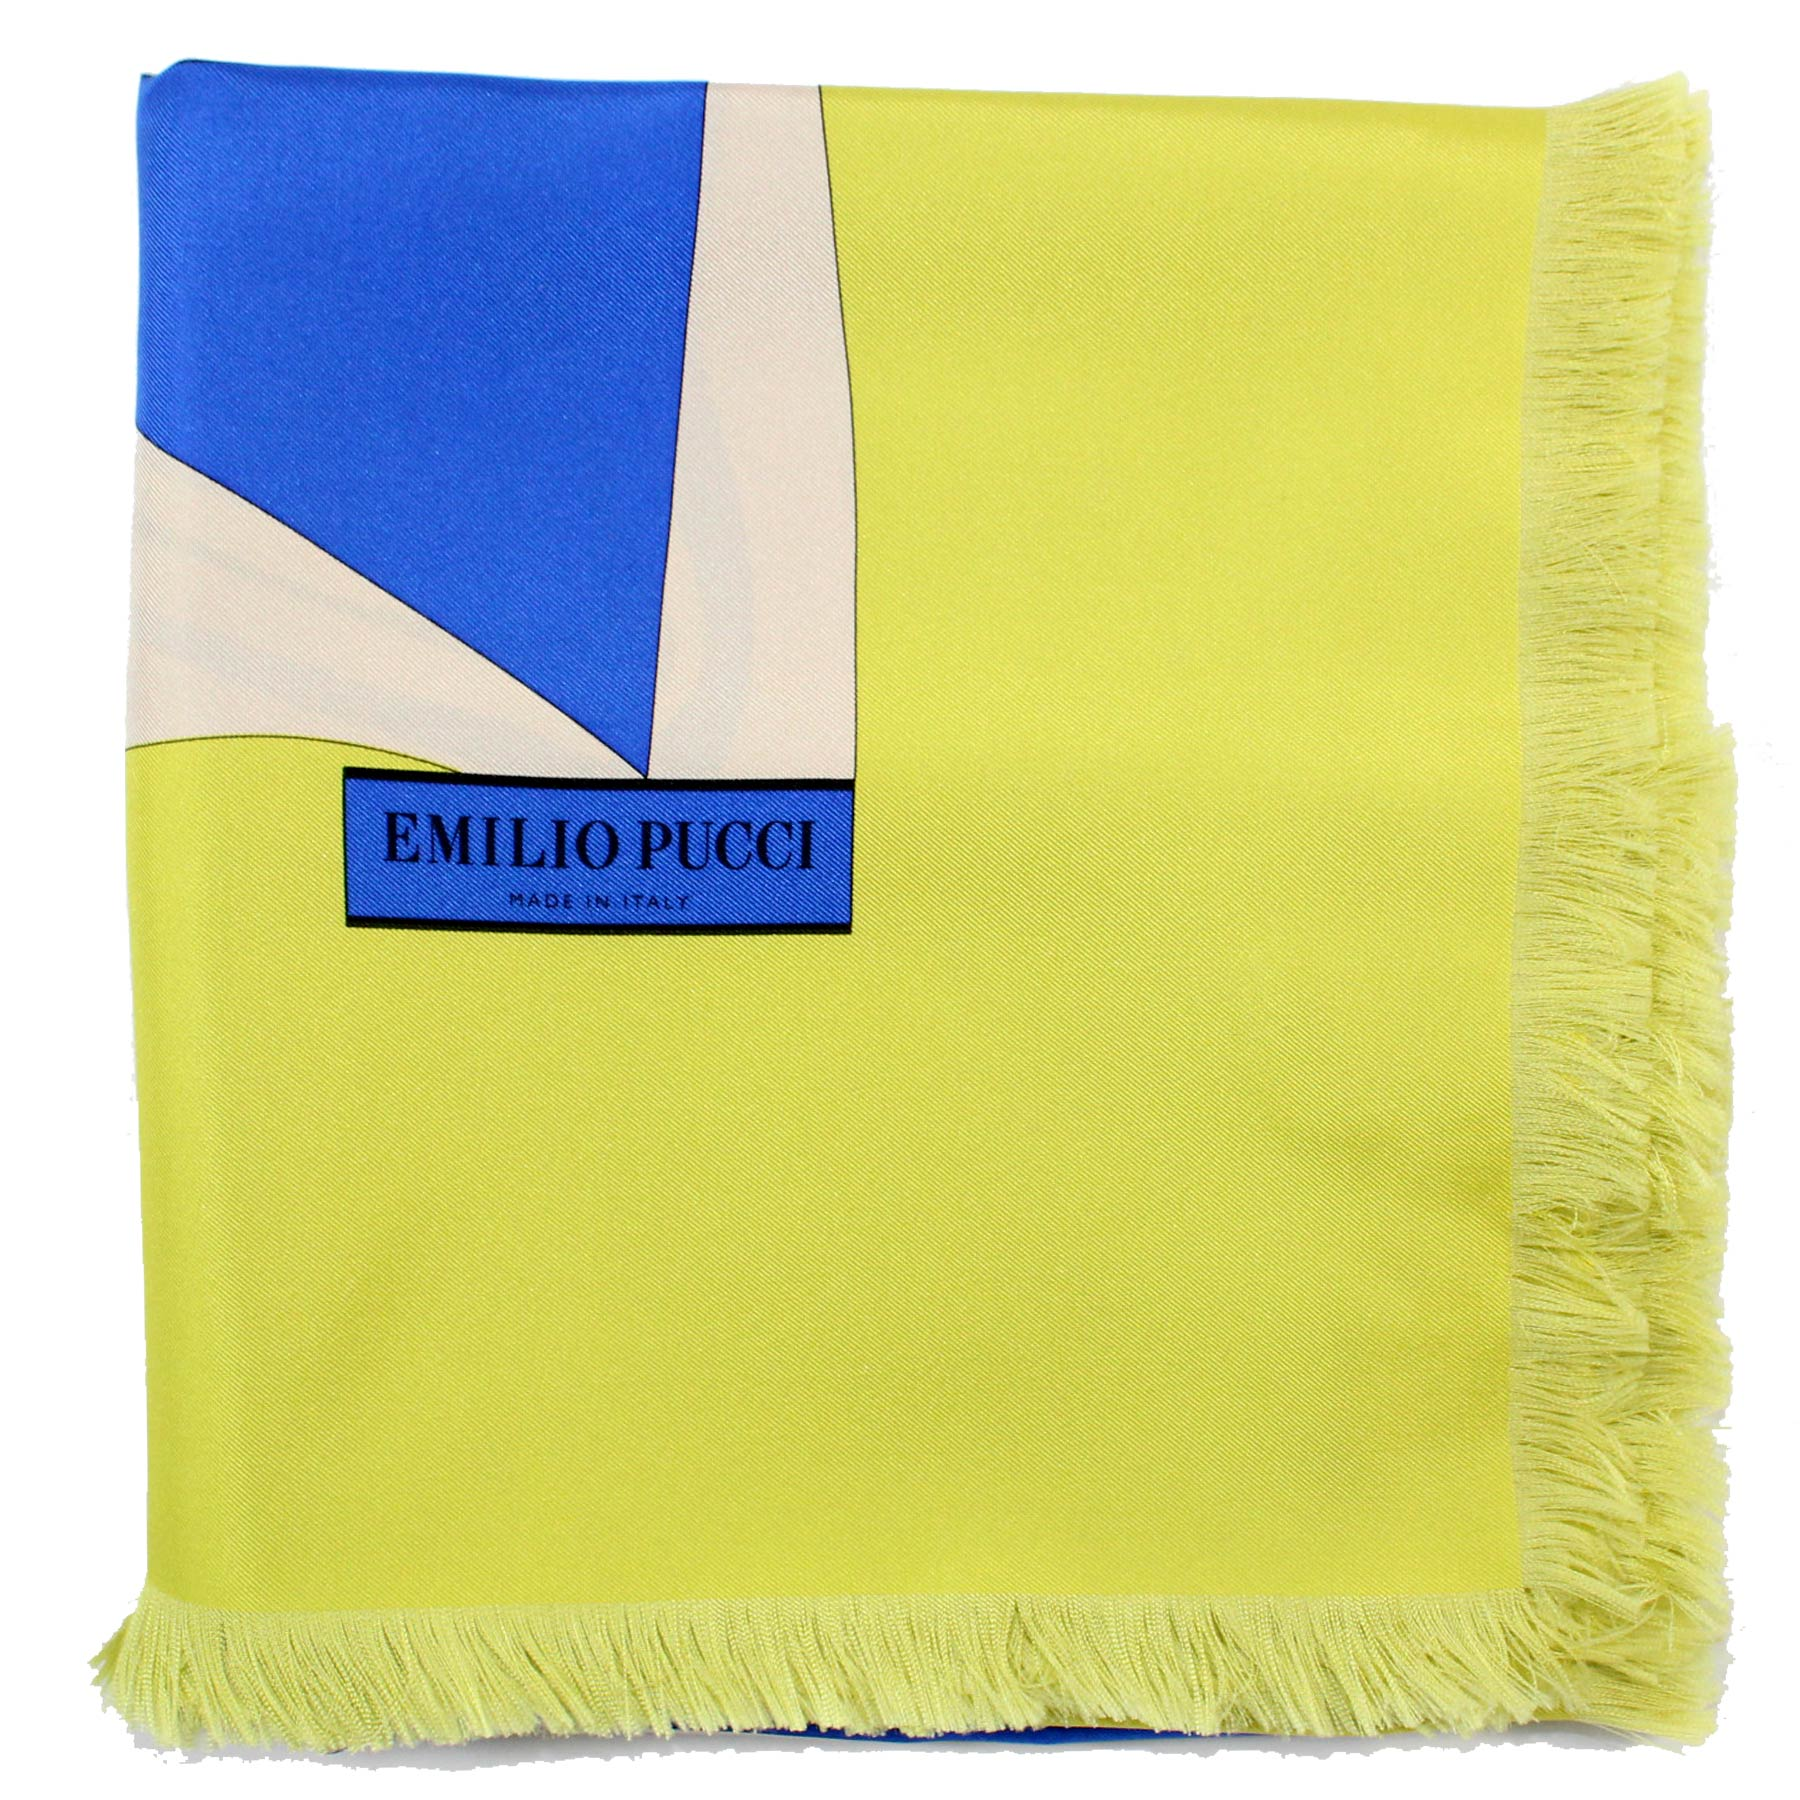 Emilio Pucci Scarf Royal Blue Lime